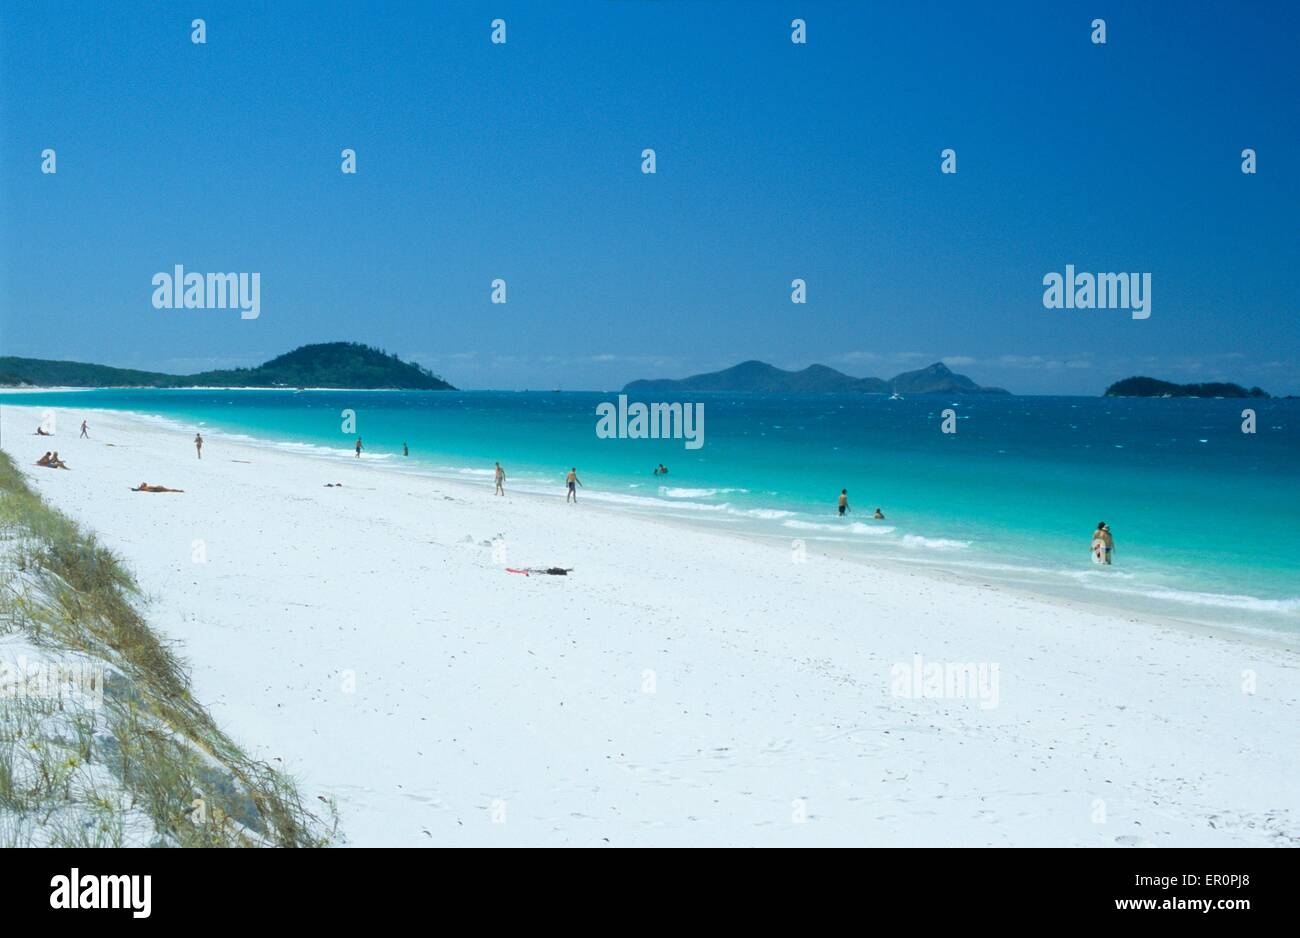 Australia, Queensland, Whitsunday island, Whitehaven beach - Stock Image